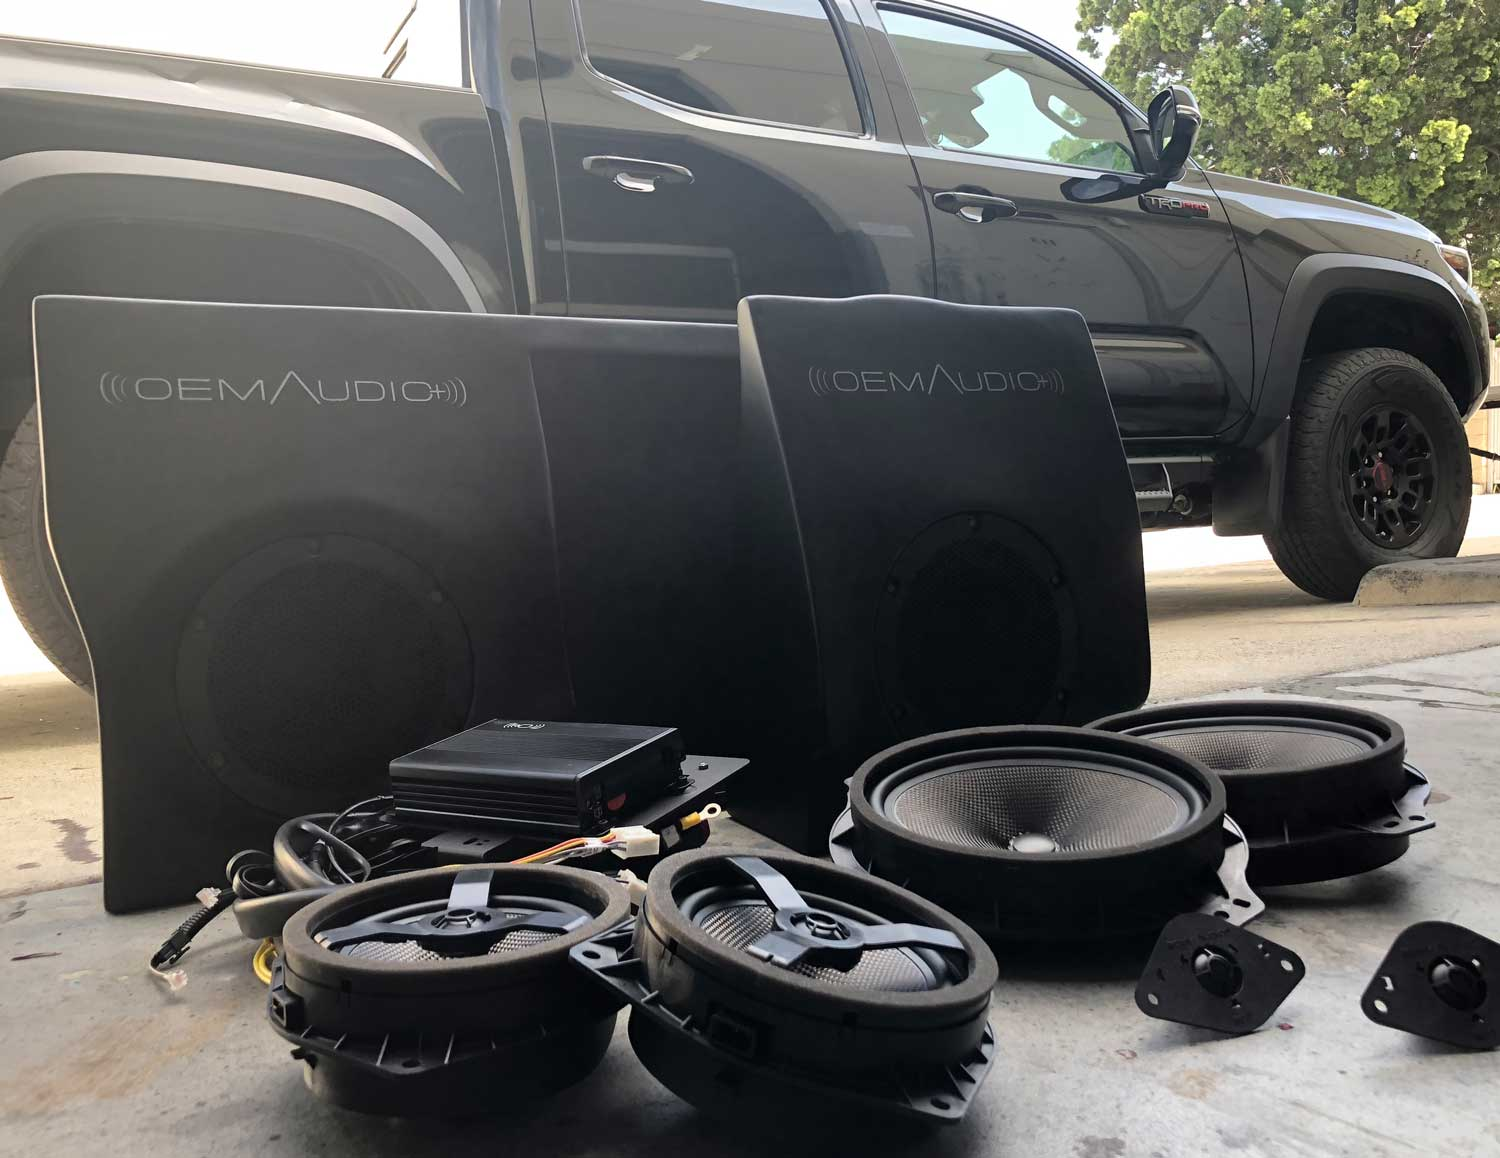 Tacoma (Dbl Cab) - OEM Audio Plus